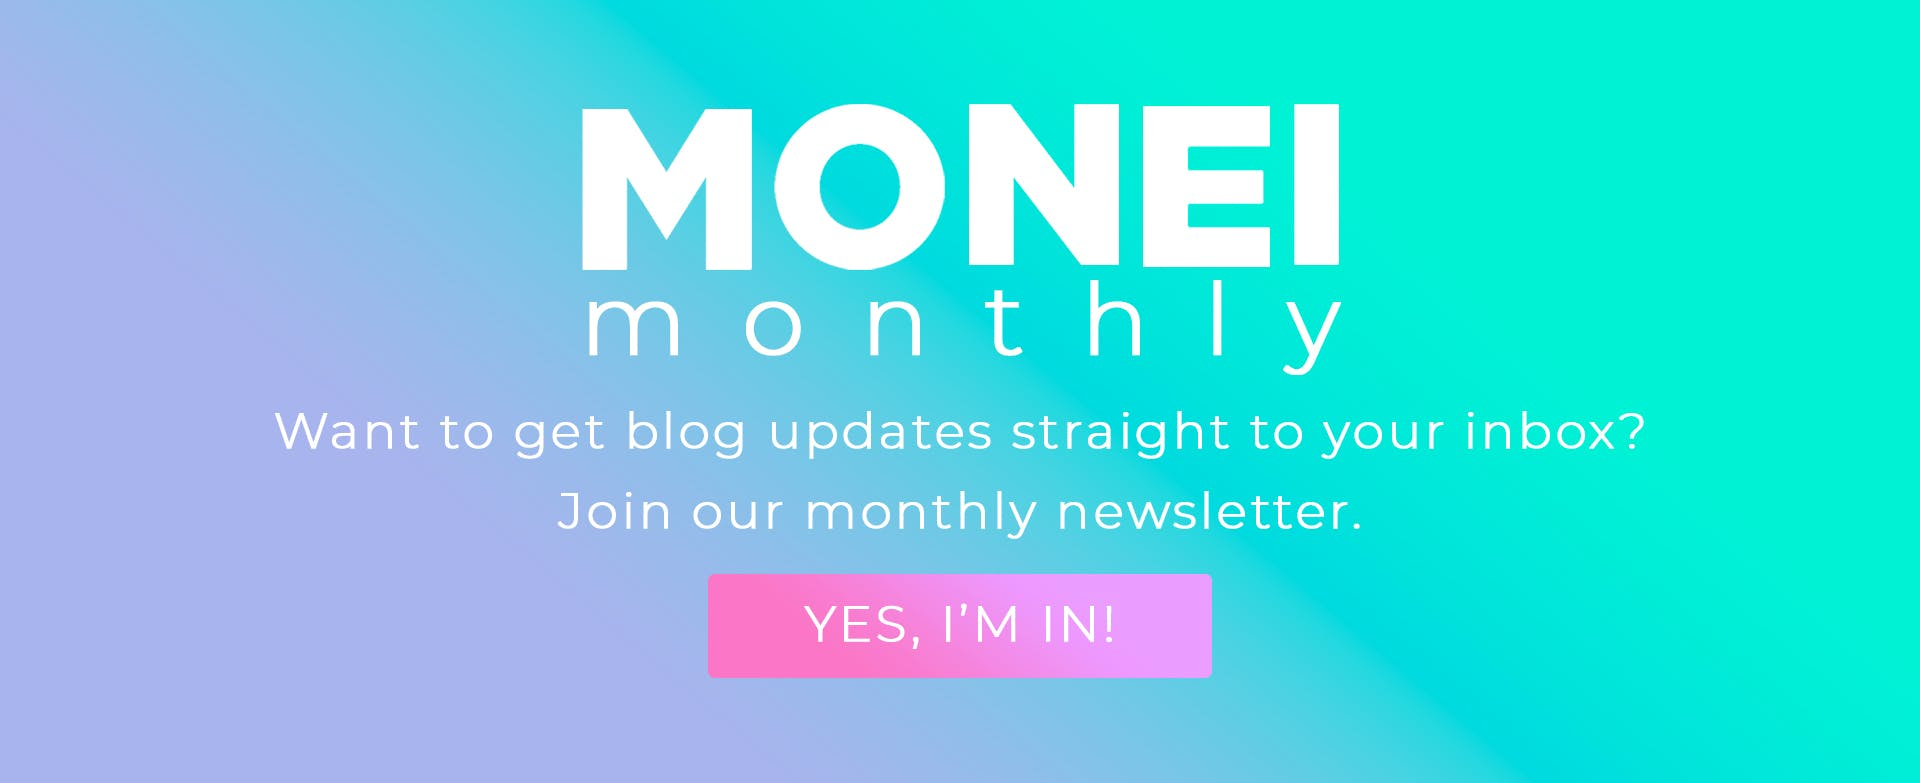 MONEI Monthly Nesletter